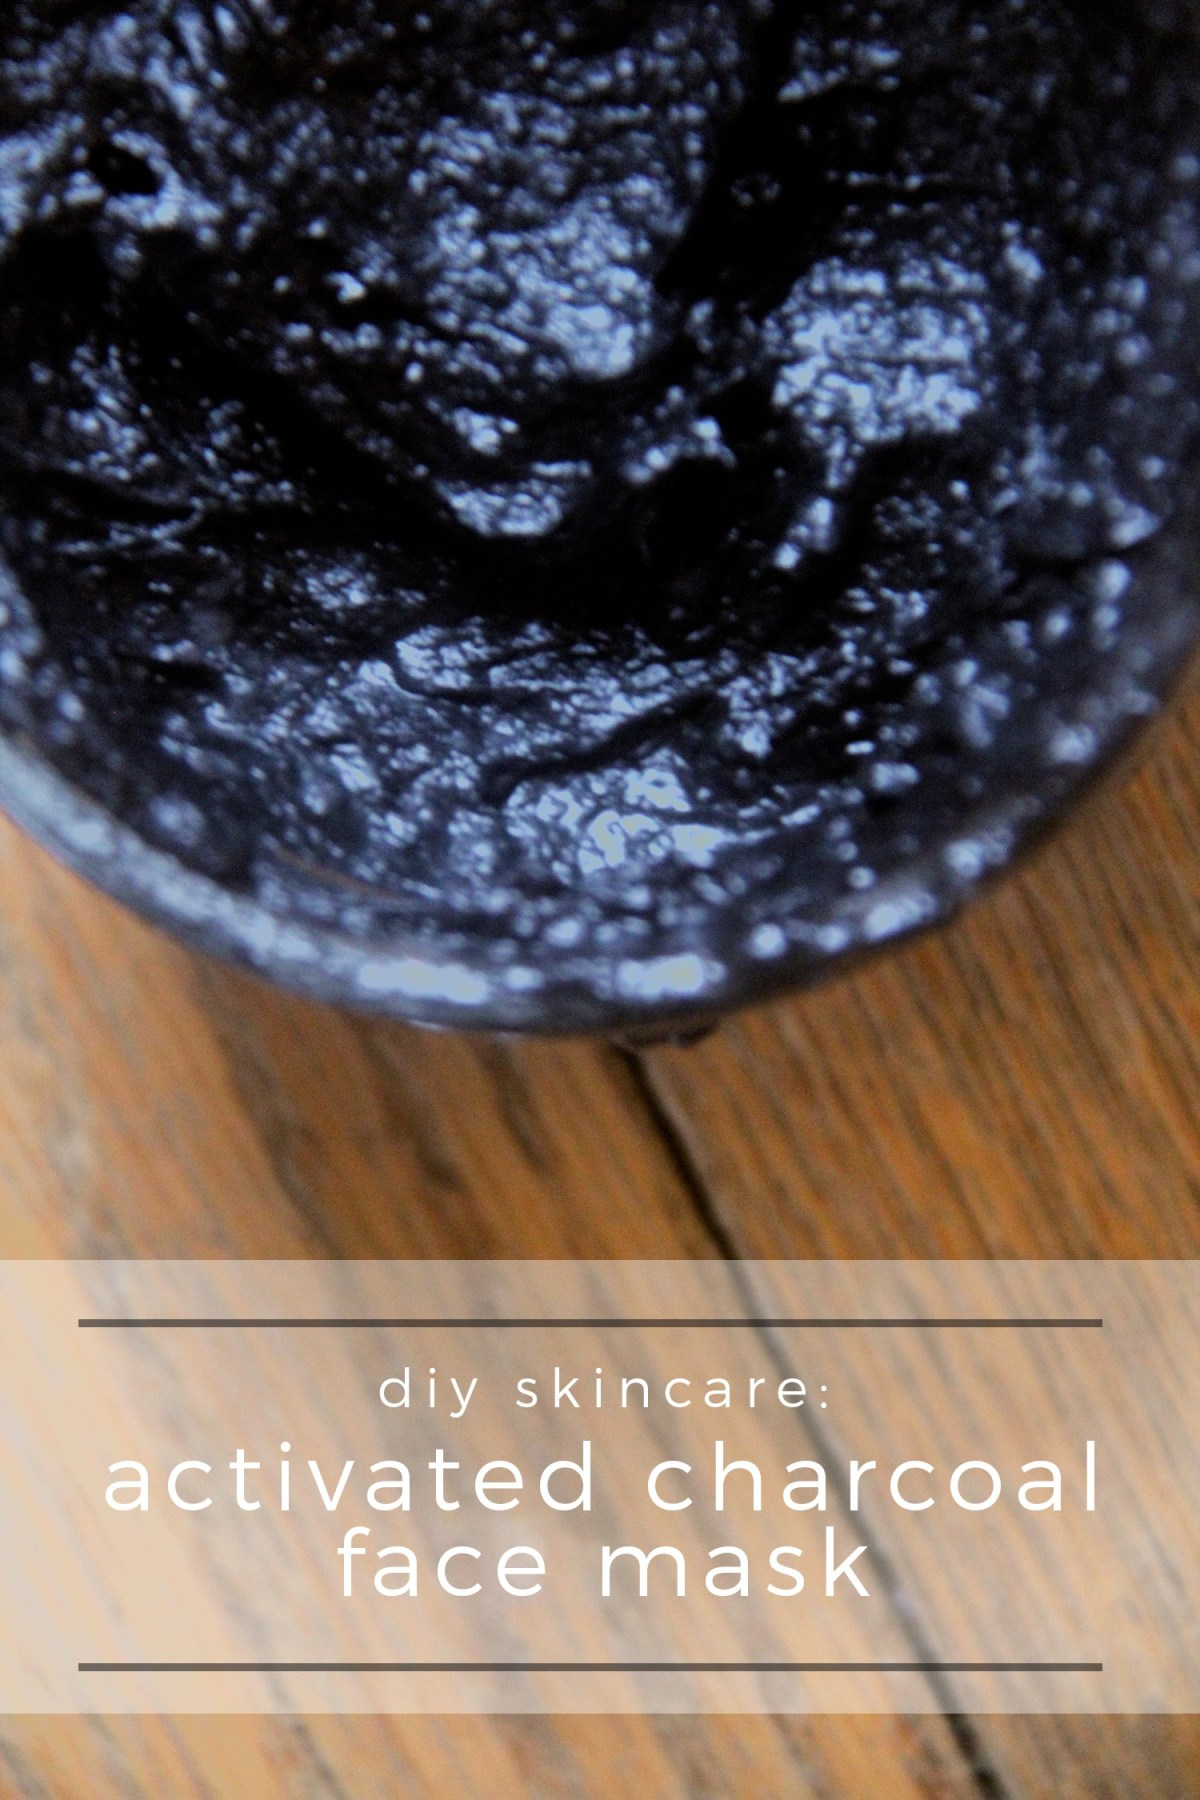 DIY Activated Charcoal Facemask | made with lev   #diyfacemask #diyskincare #diybeauty #activatedcharcoal #charcoalfacemask #craftingwithkids #craftykids #kidscrafts #athomespa #facemask #skincare